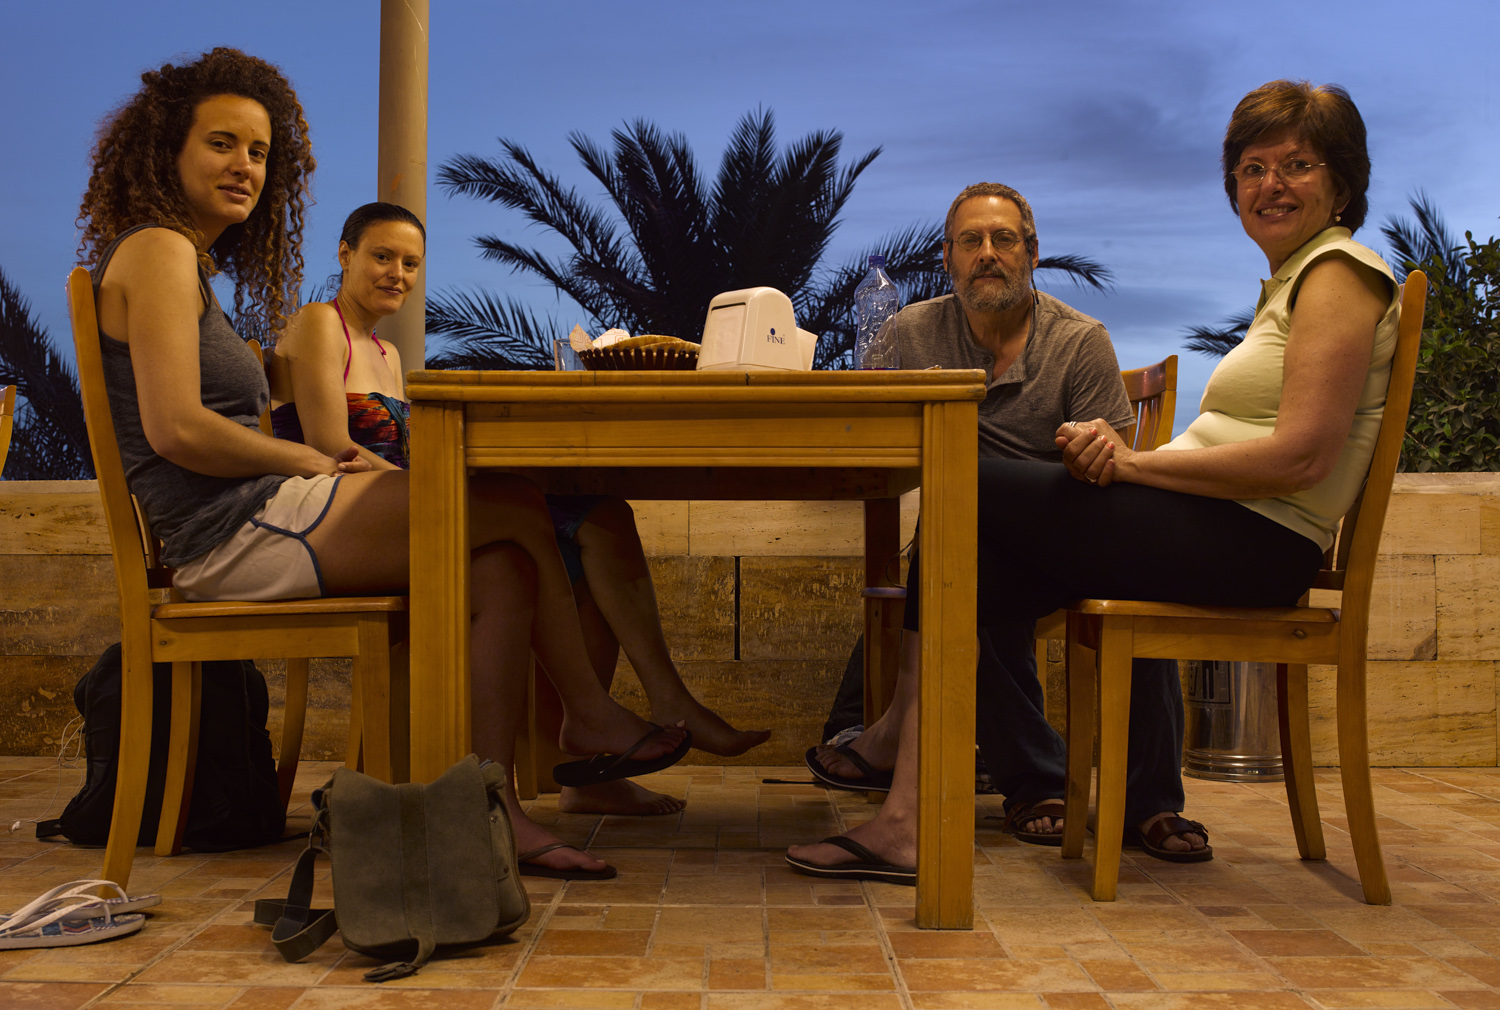 Supper - Darna Hotel, Aqaba, Pesach, 2014